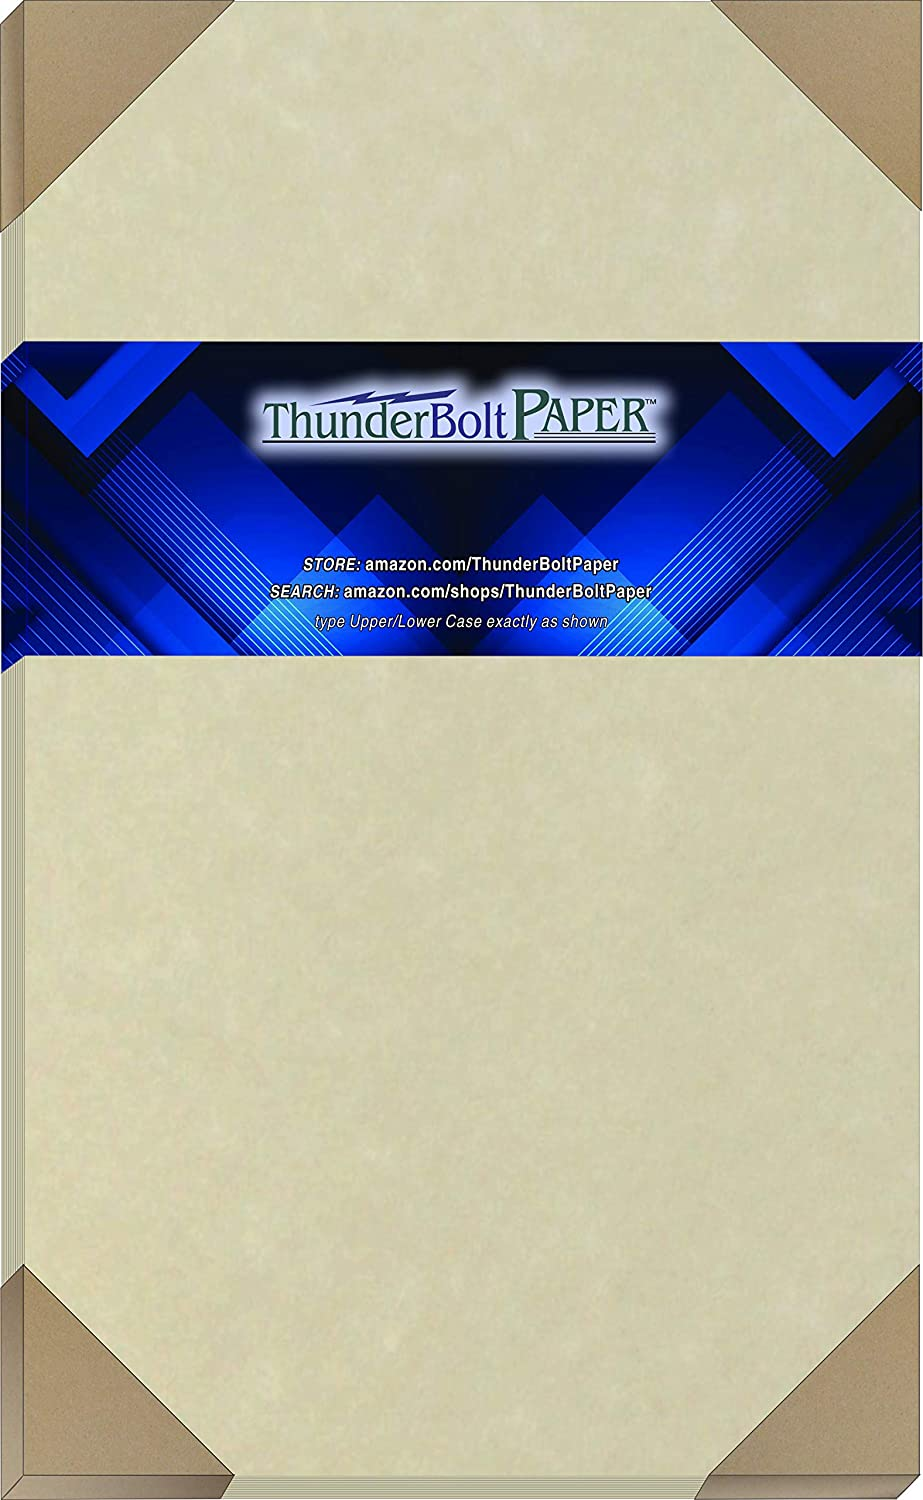 300 Natural Parchment 65lb Cover Paper Sheets 8.5X14 Inches Cardstock Weight Colored Sheets 8.5X14 Inches Legal|Menu Size - Printable Old Parchment Semblance